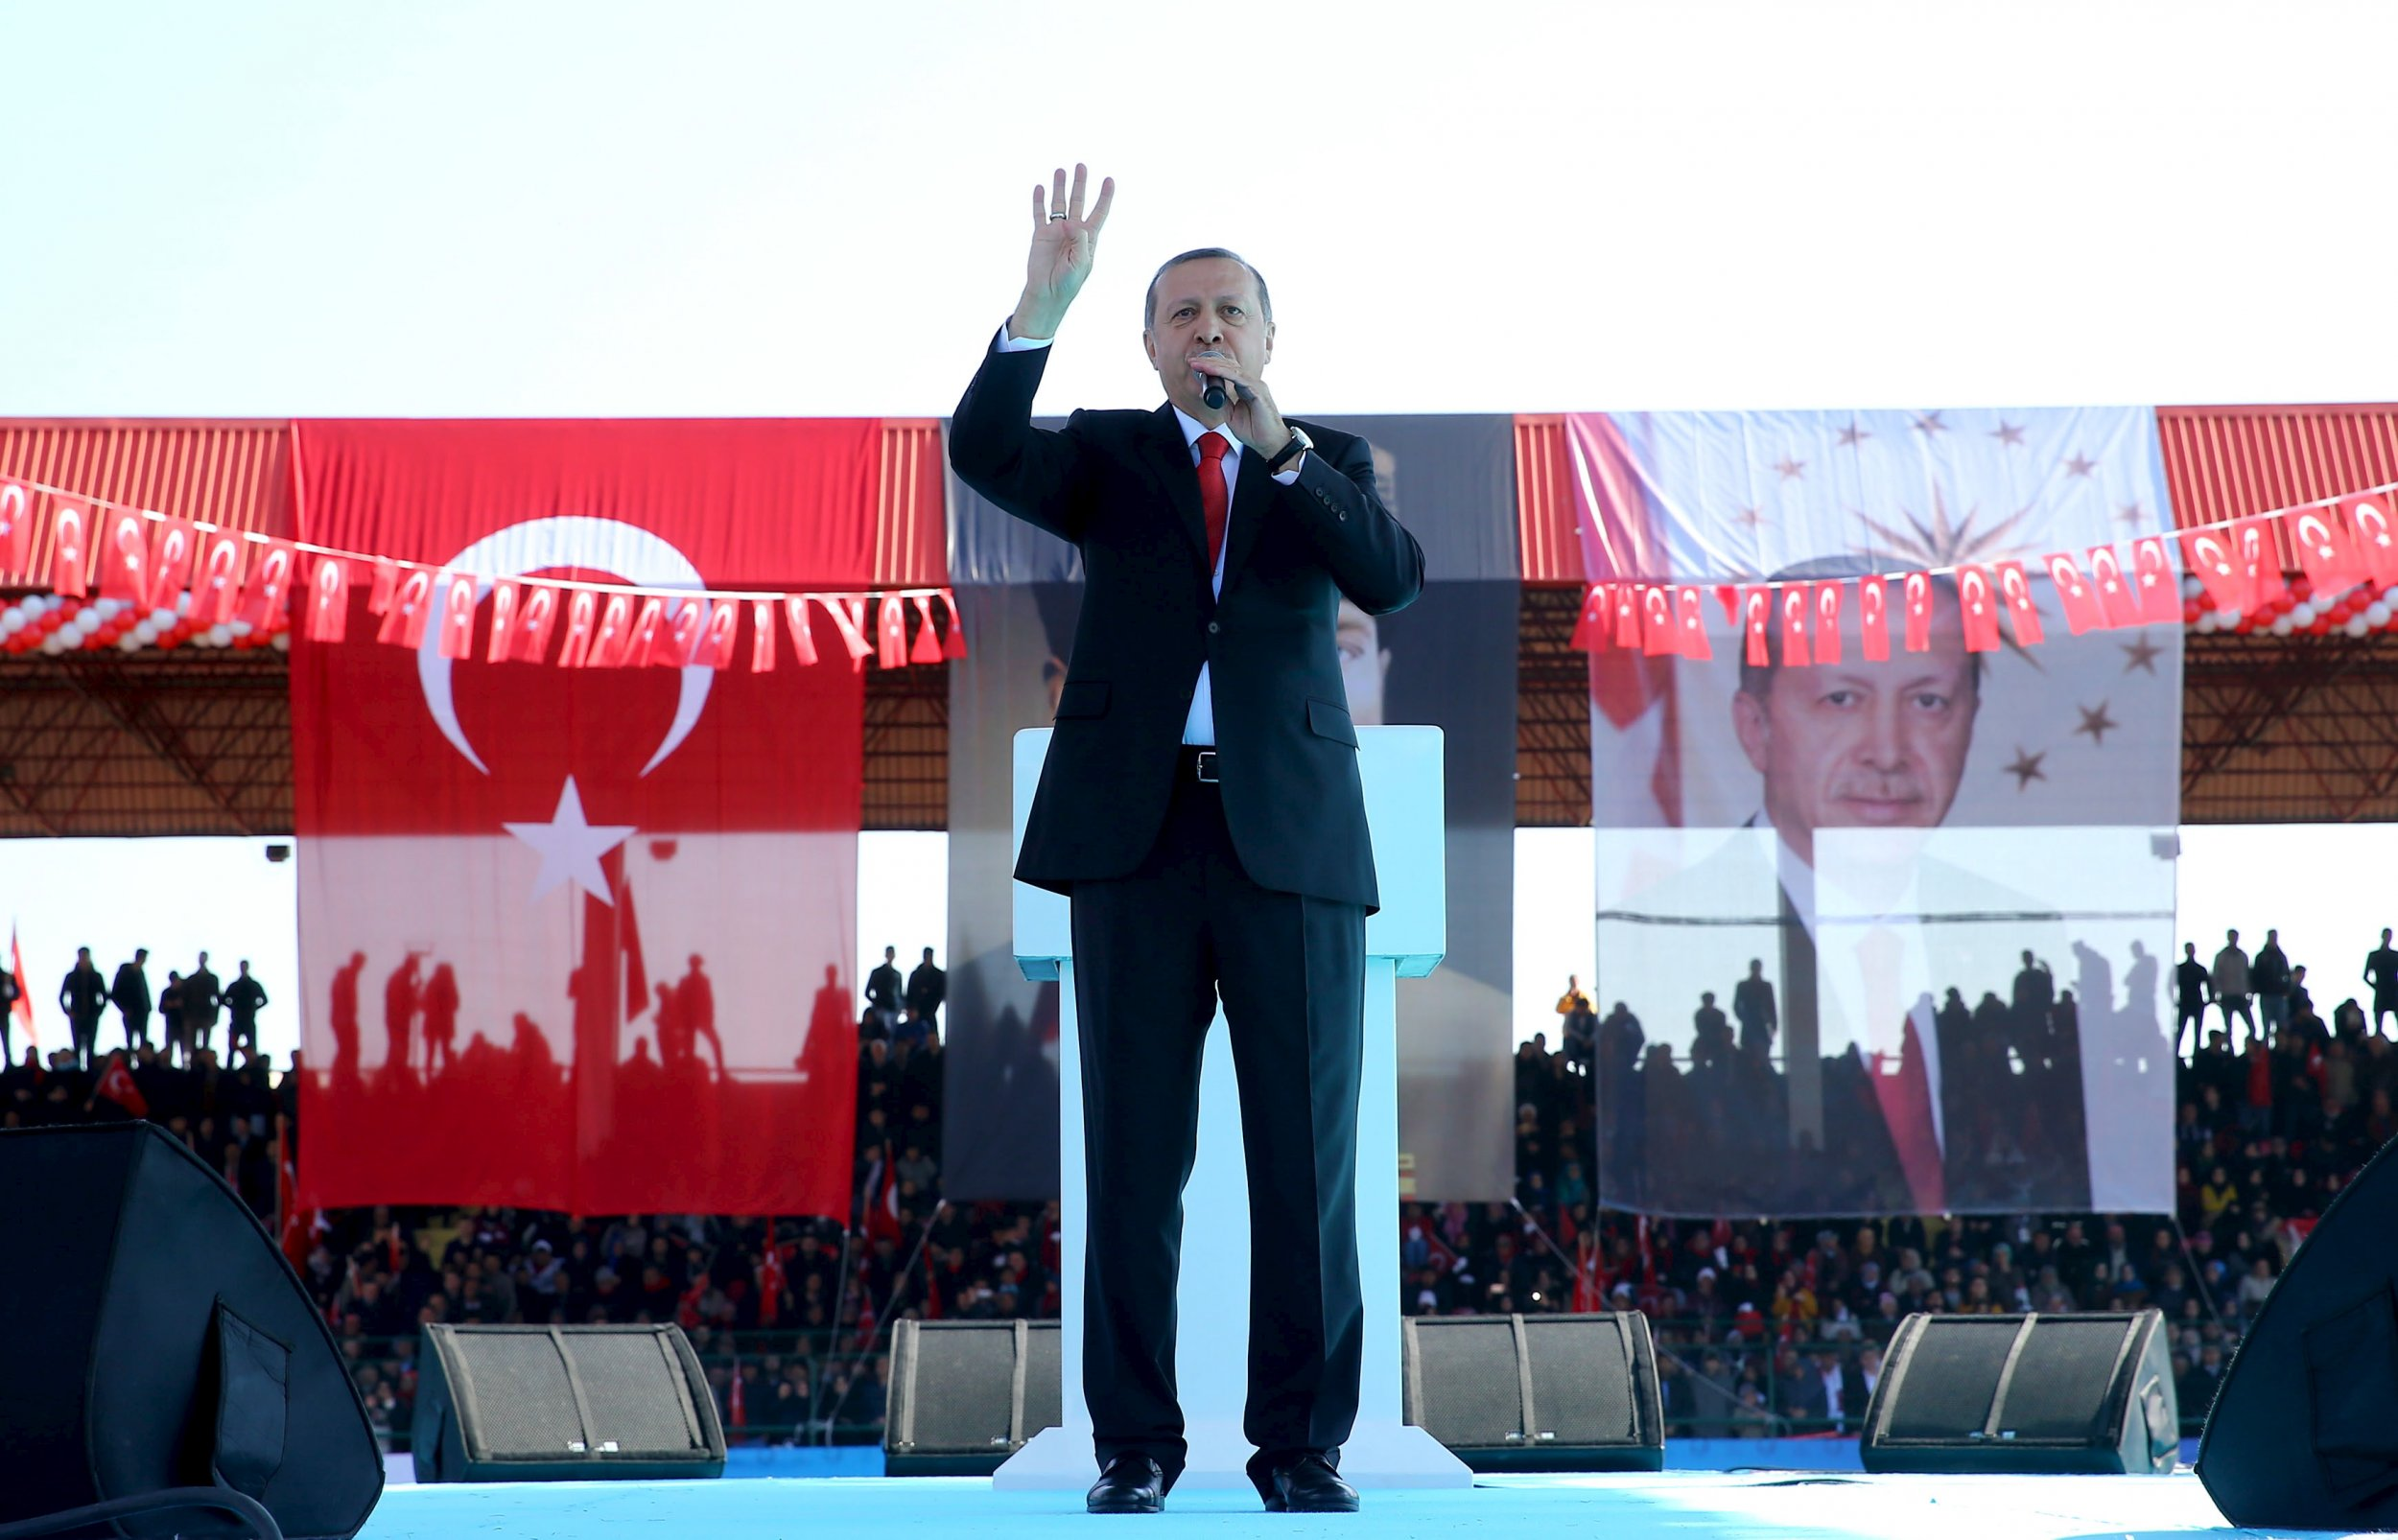 03_17_turkey_erdogan_01